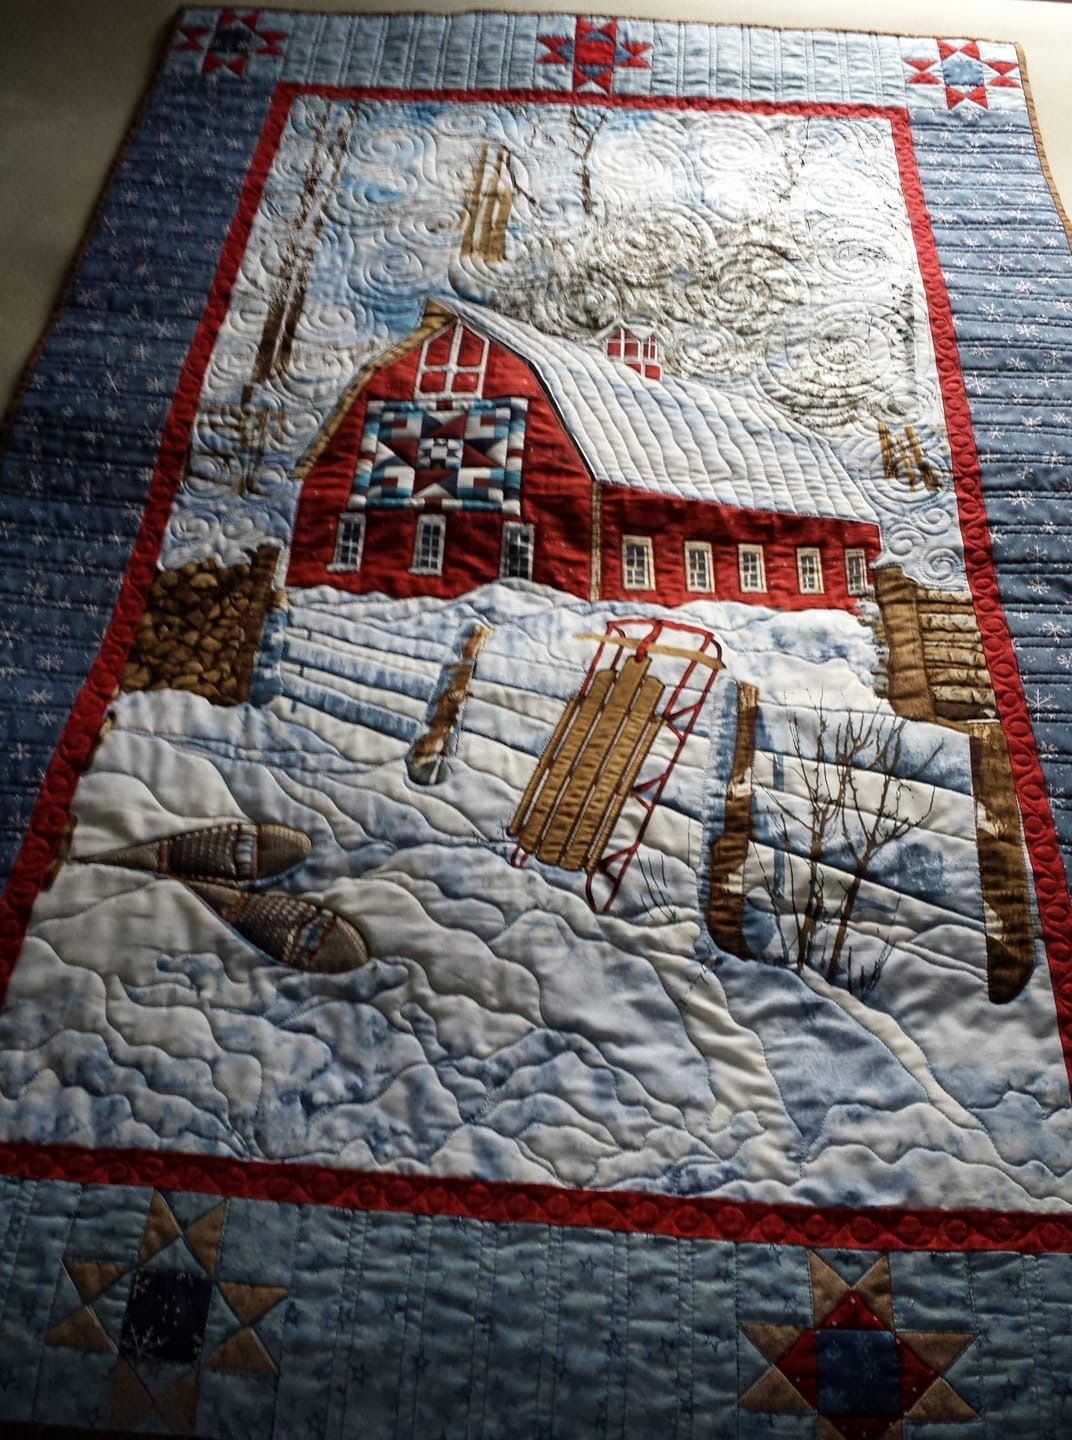 Winter farm scene. Red barn in the snow with old sled. Quilt Artist ...